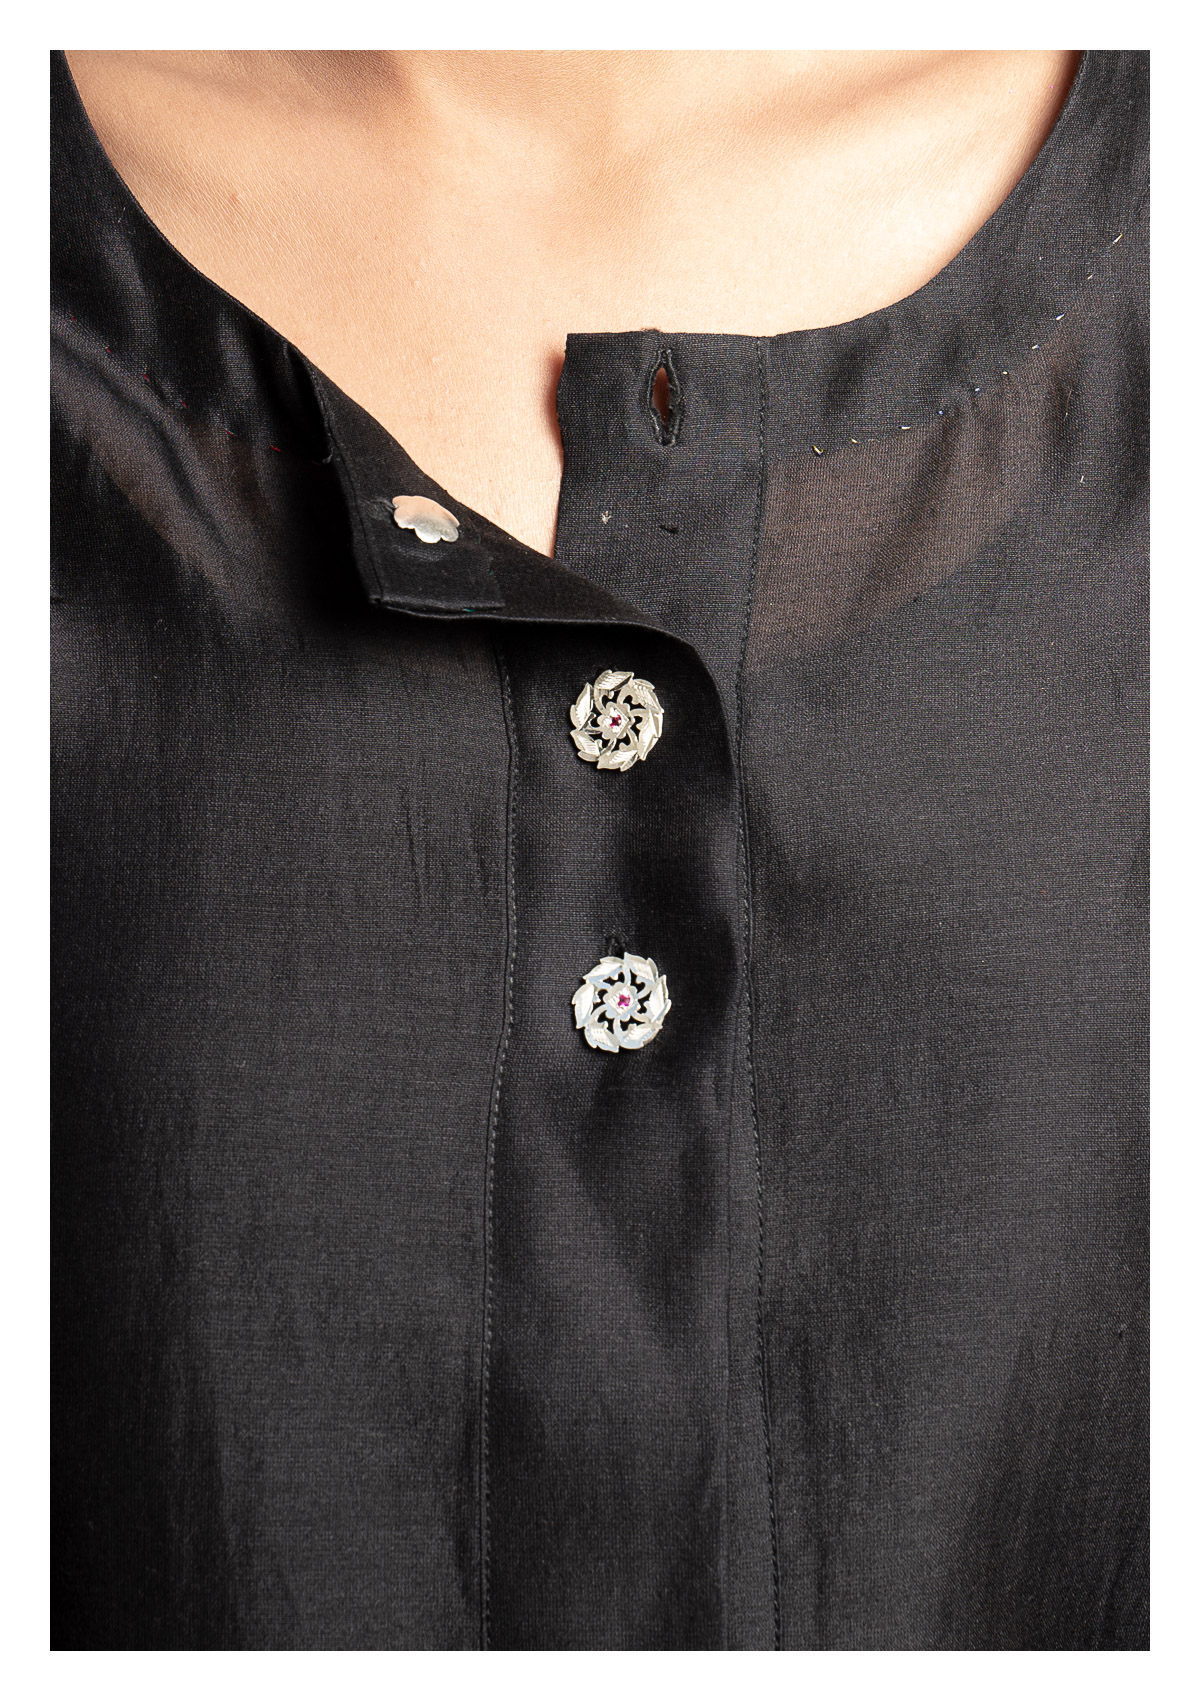 Chellam Silver Buttons